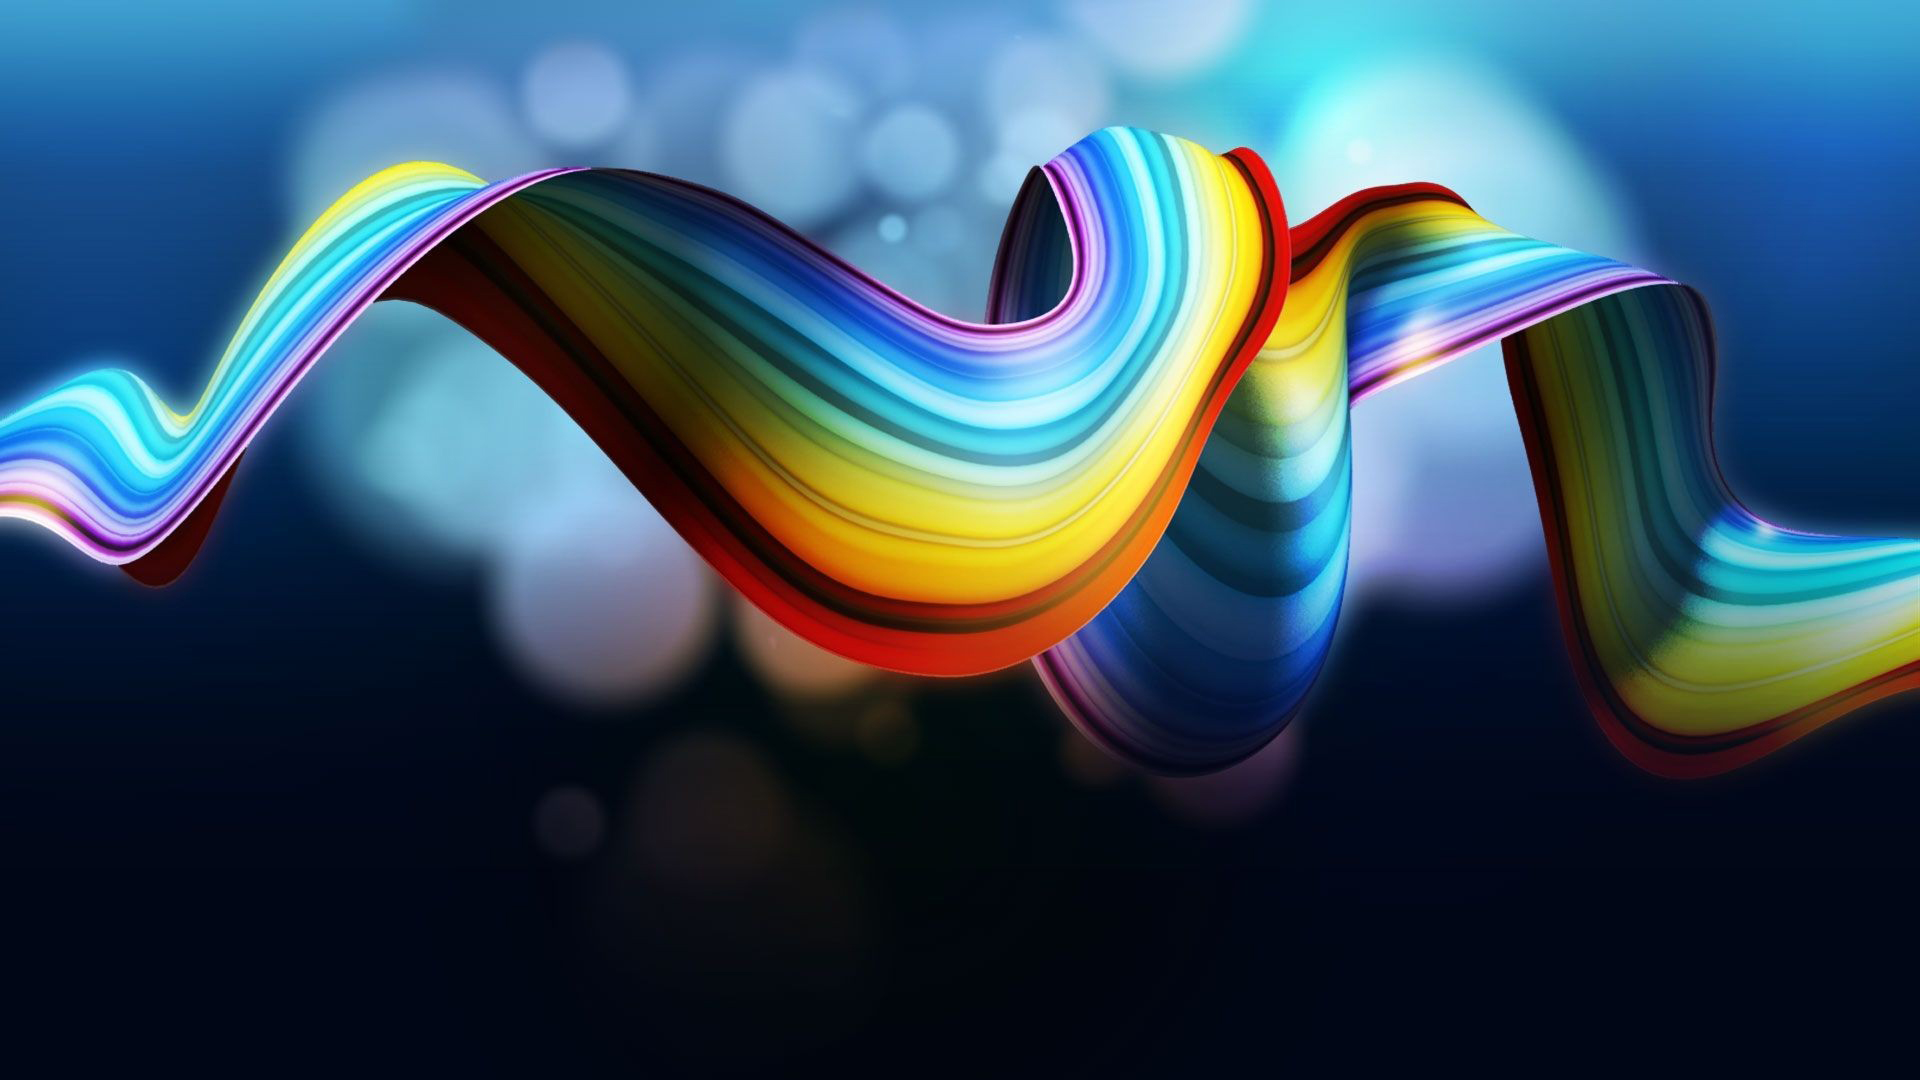 25 hd rainbow wallpapers for Best art websites for artists